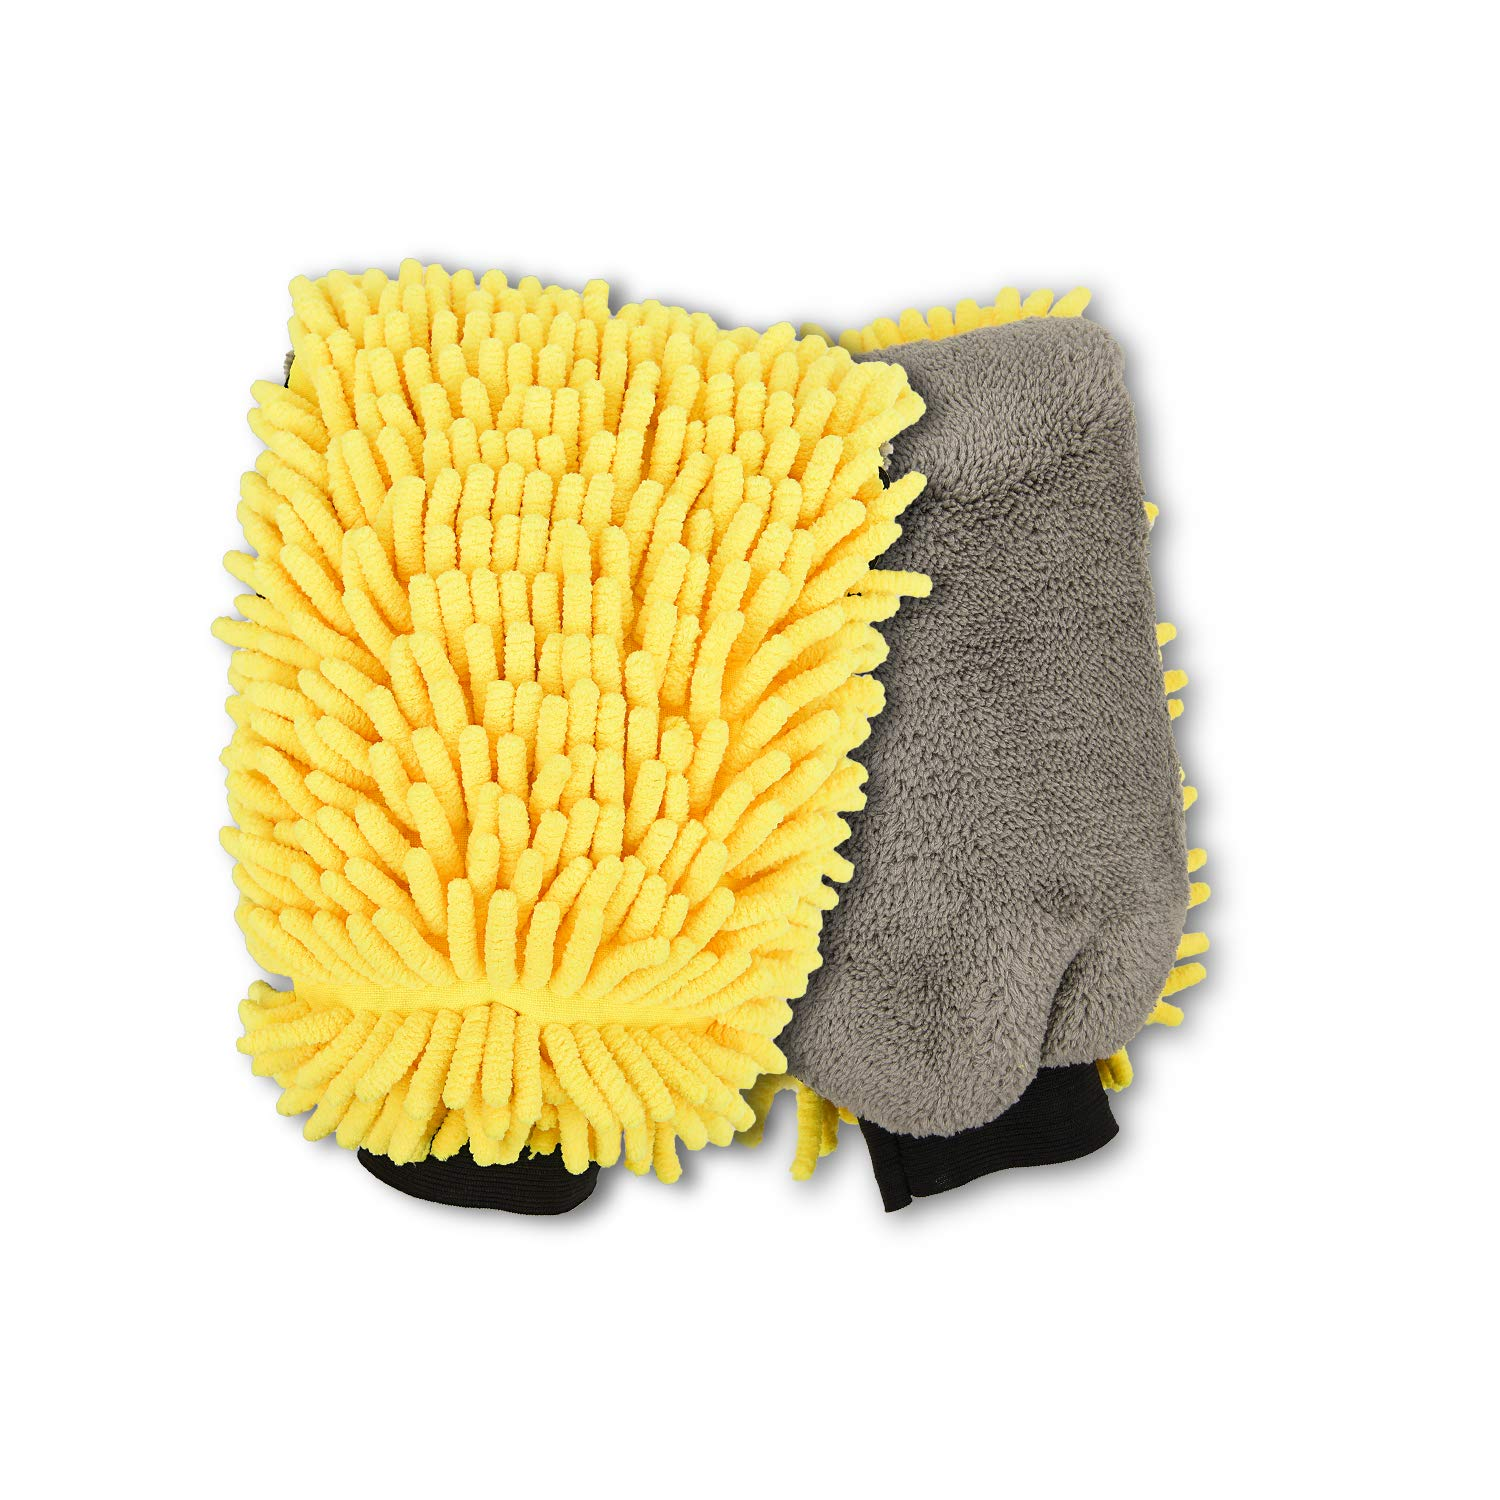 HAPINNEX Microfiber Floor Mop Heads - 2 Pack Refills - Compatible With 360° Spin Cleaning Mops (with diameter between 6.1